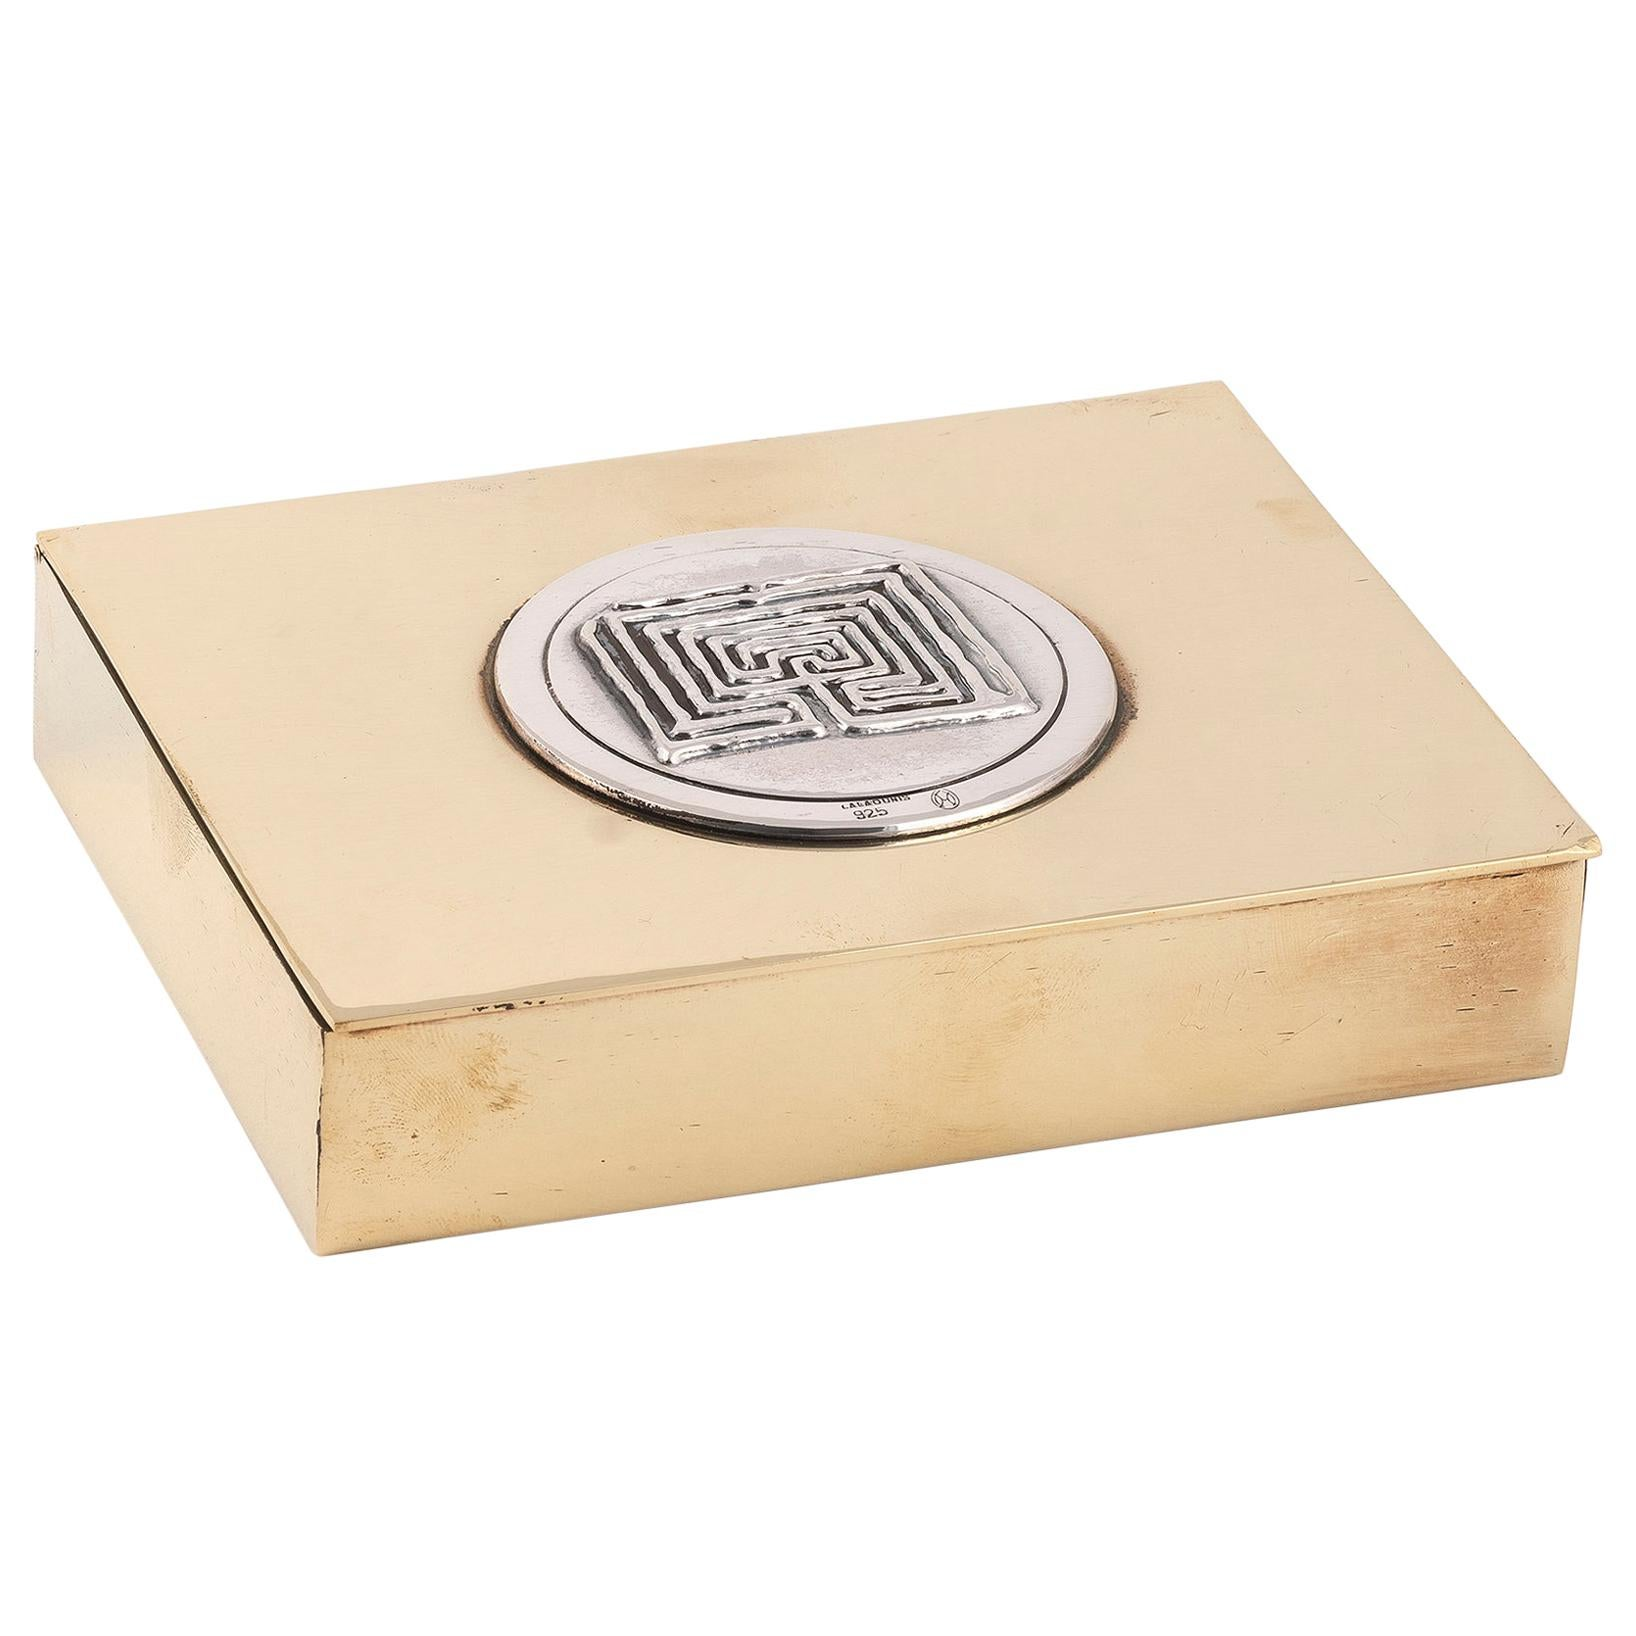 Rare Labyrinth Cigarette Box by Lalaounis, Brass and Silver, 1970s